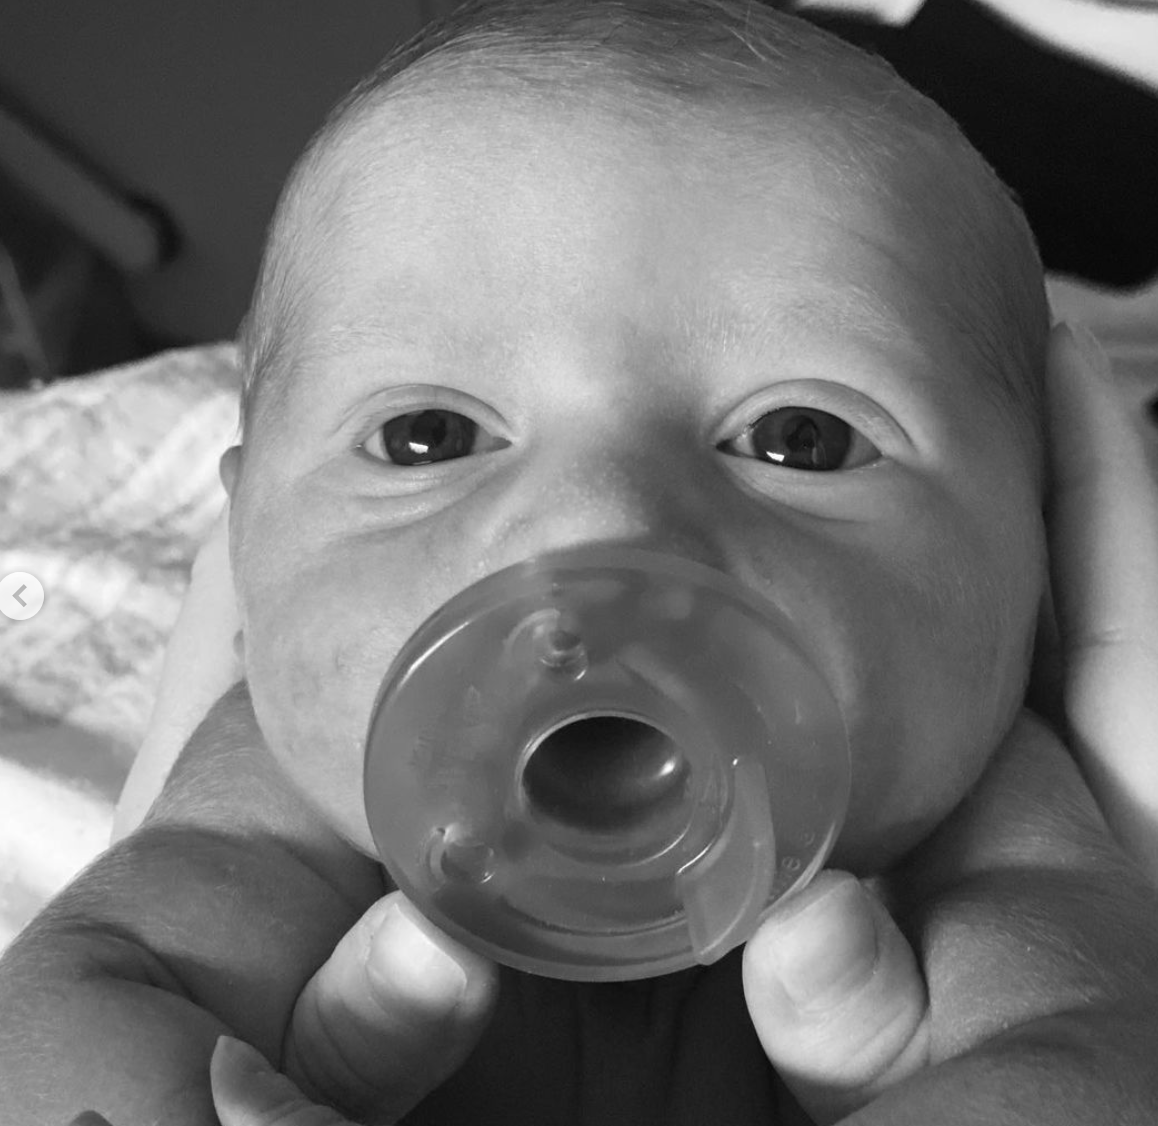 Baby Riley with a pacifier in his mouth